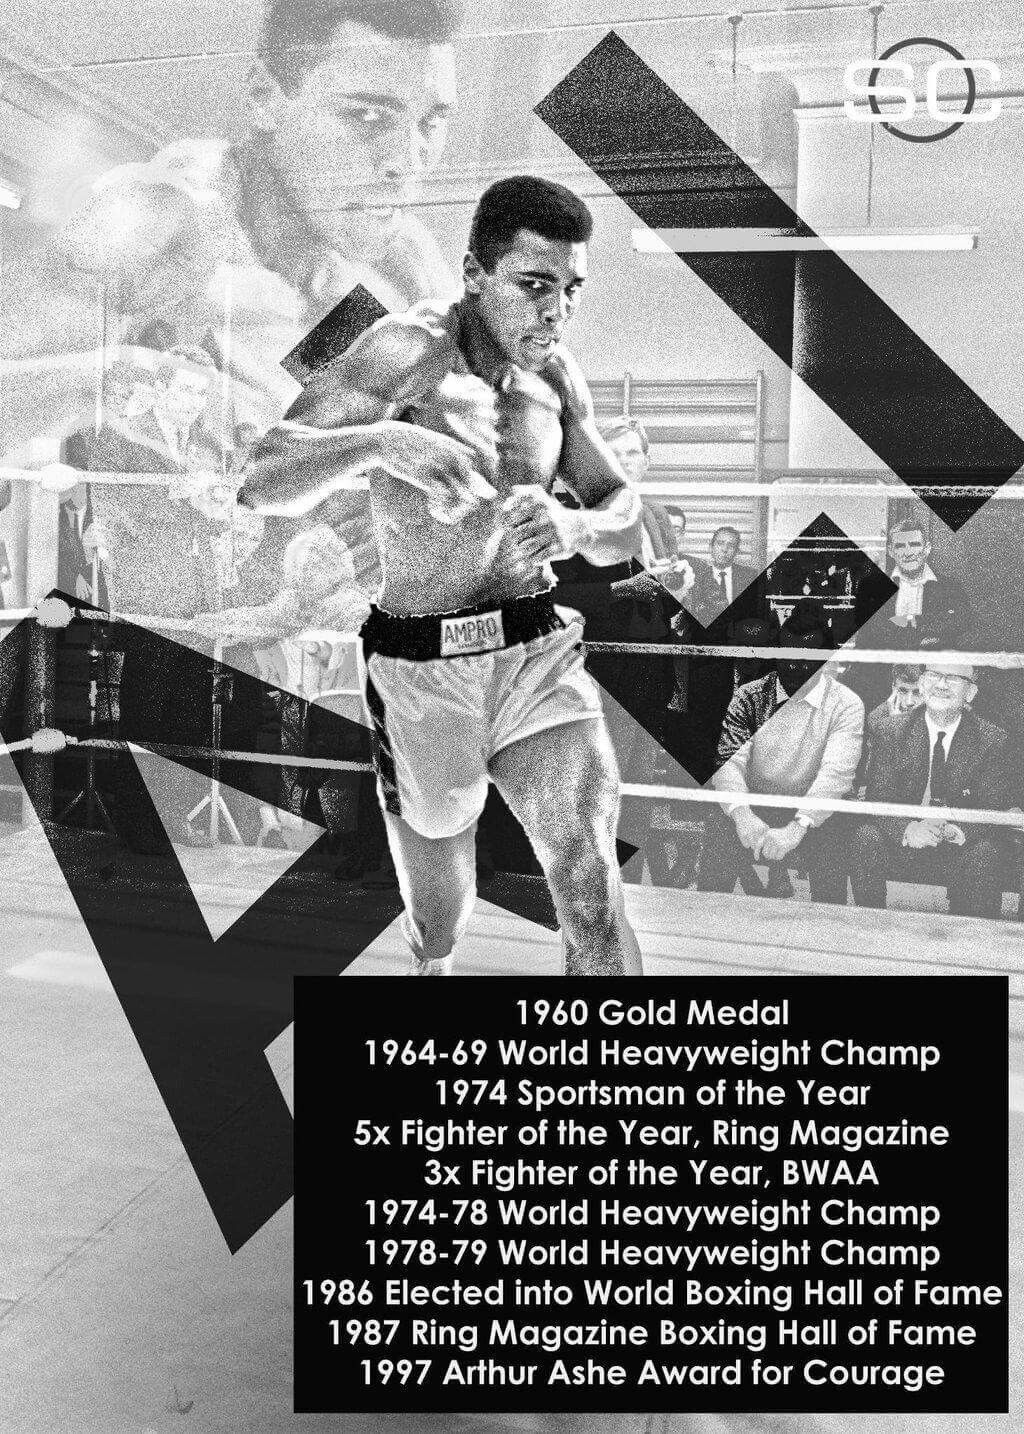 Pin by Allen Buckingham on Things I love World boxing